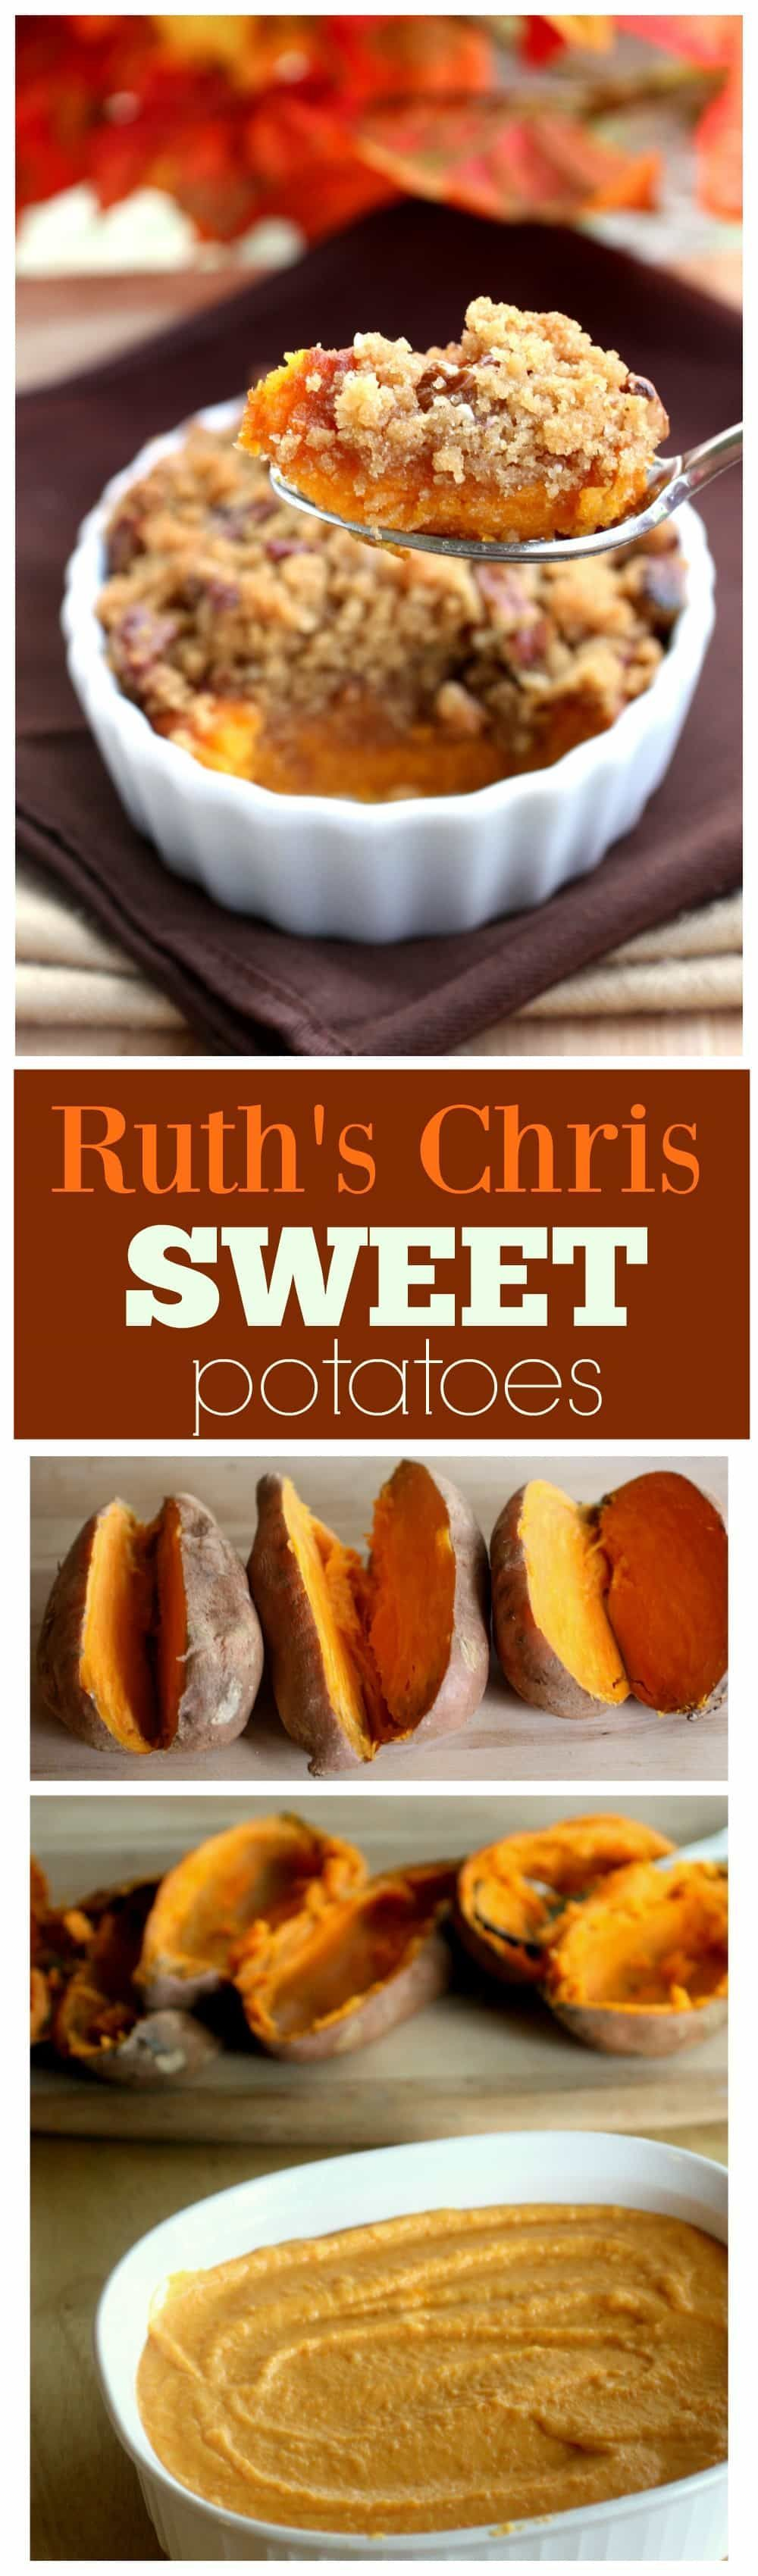 Potatoes are creamy and topped with a brown sugar pecan crust just like they are at Ruth's Chris Steakhouse. One of our family favorites, this will turn even non-sweet potato lovers into avid fans. the-girl-who-ate-